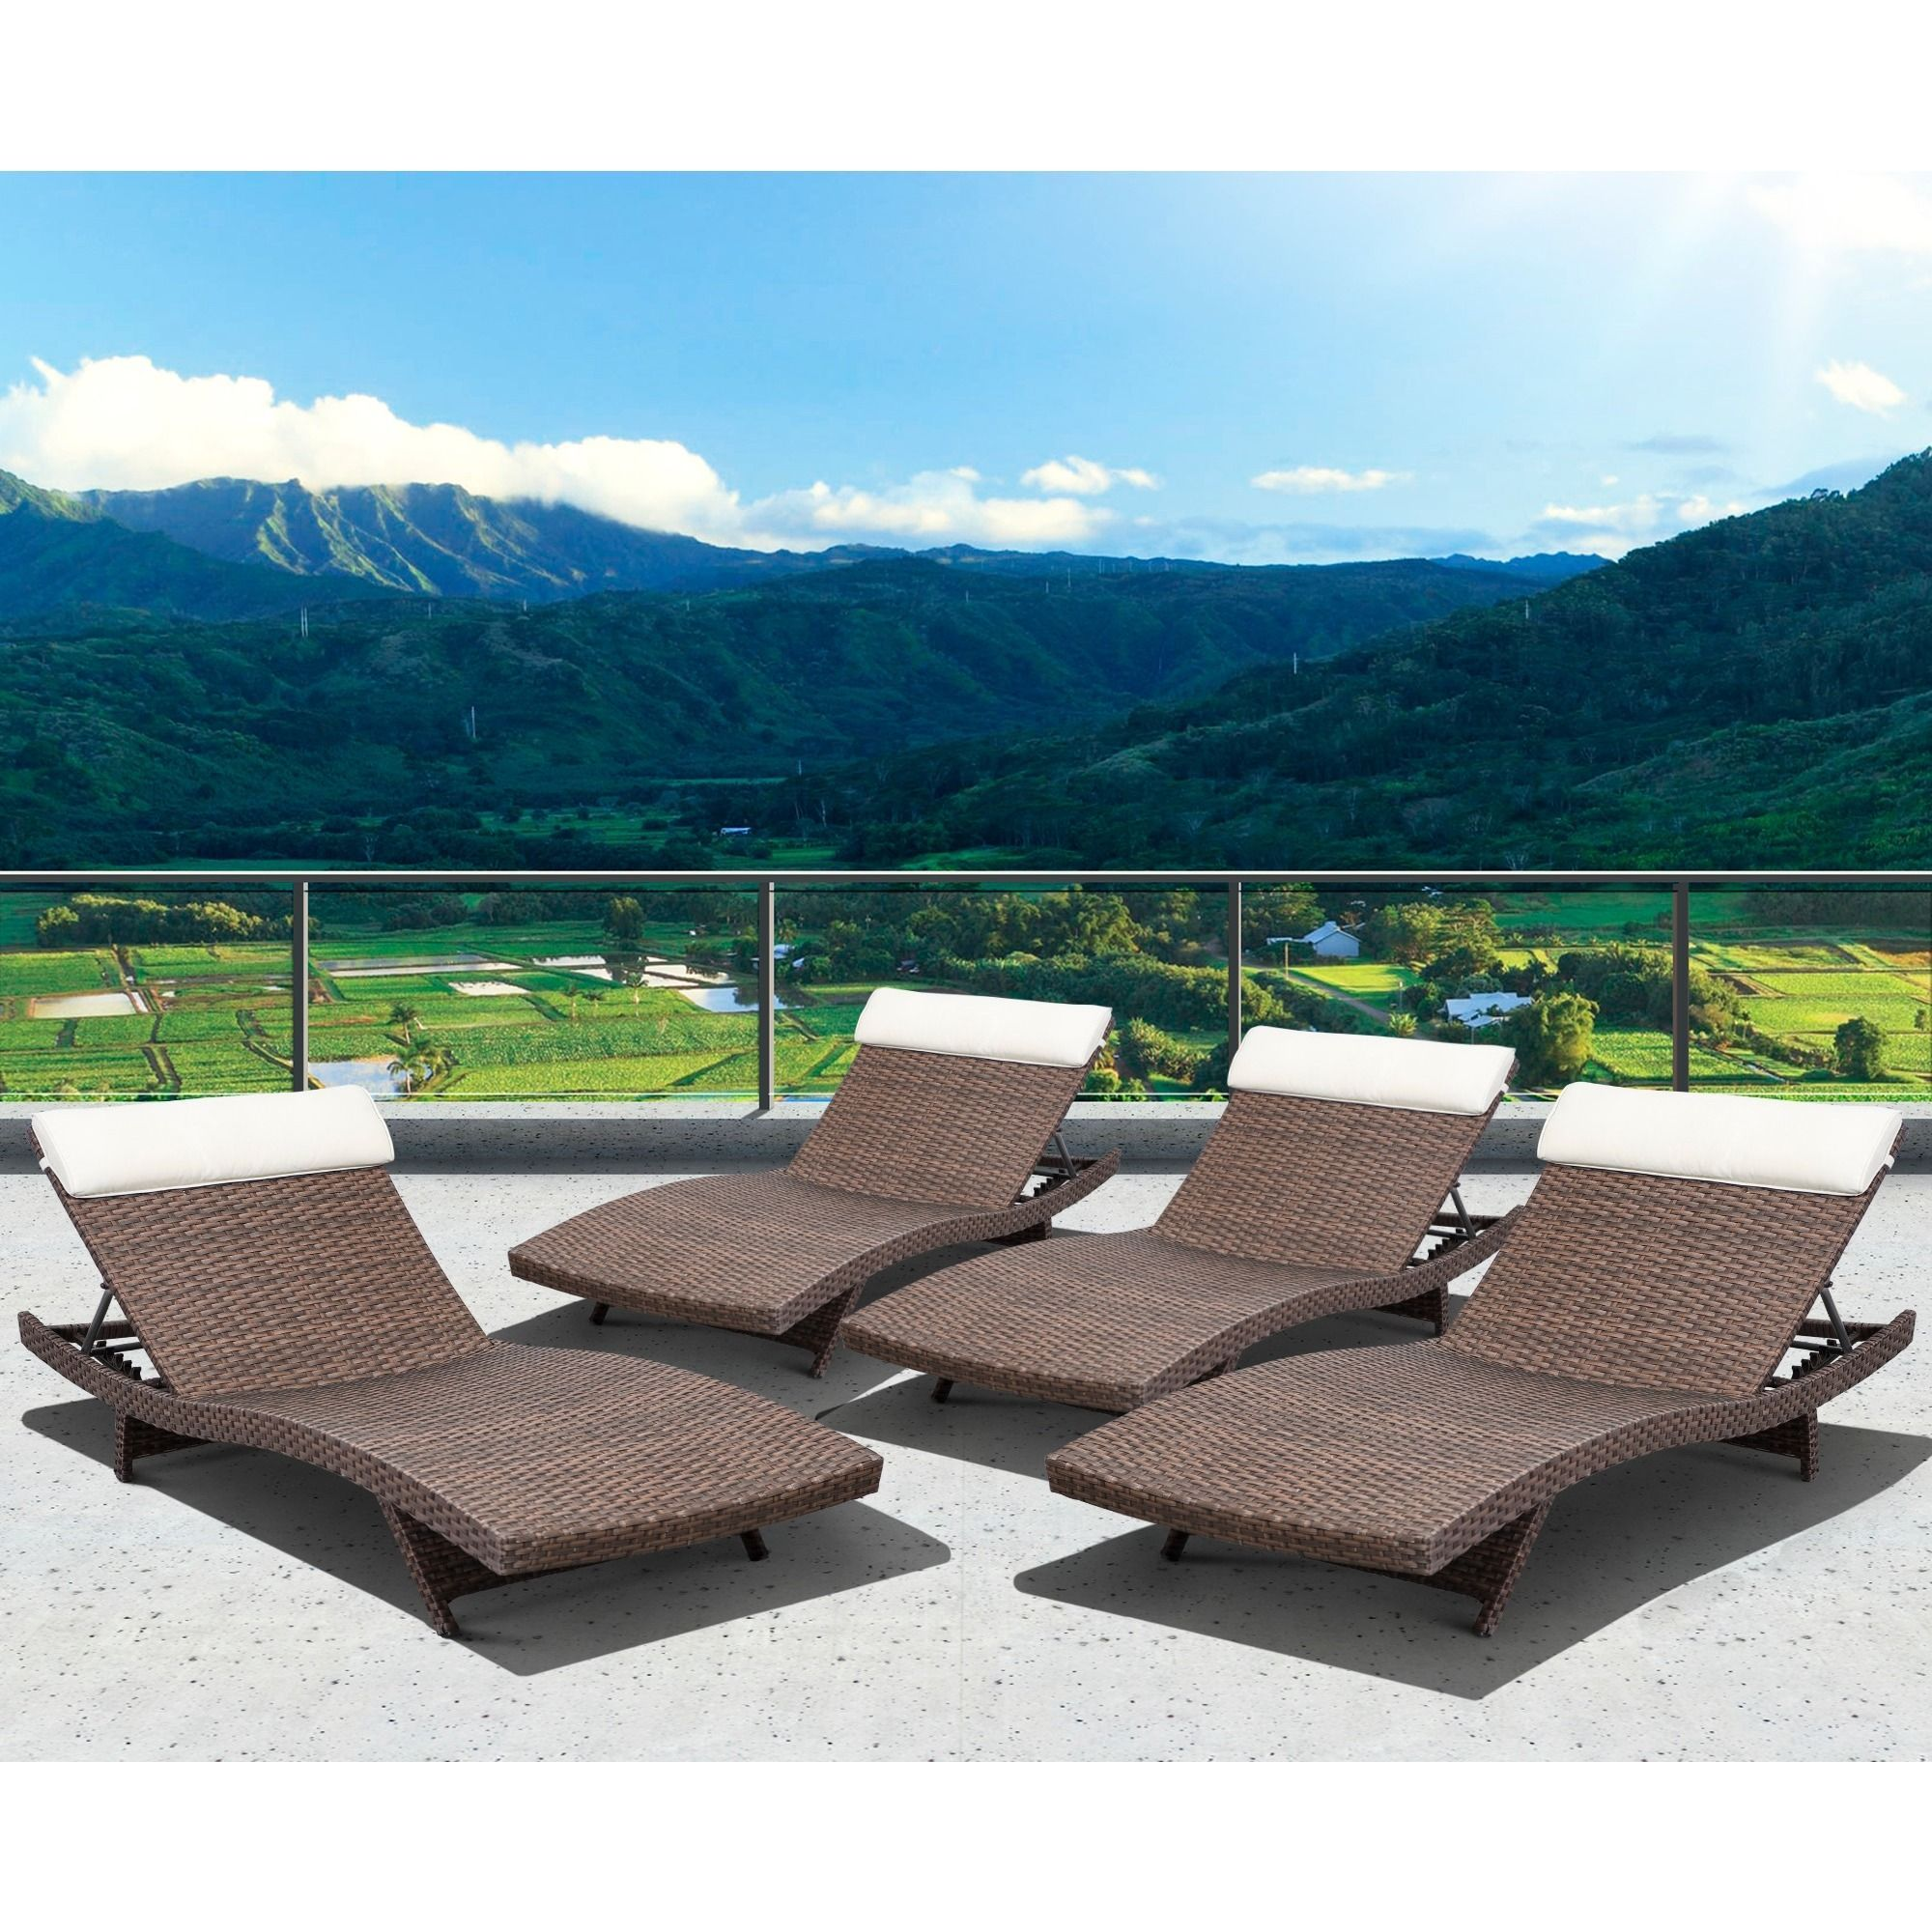 The Mykonos Deluxe patio lounger set bines quality style and